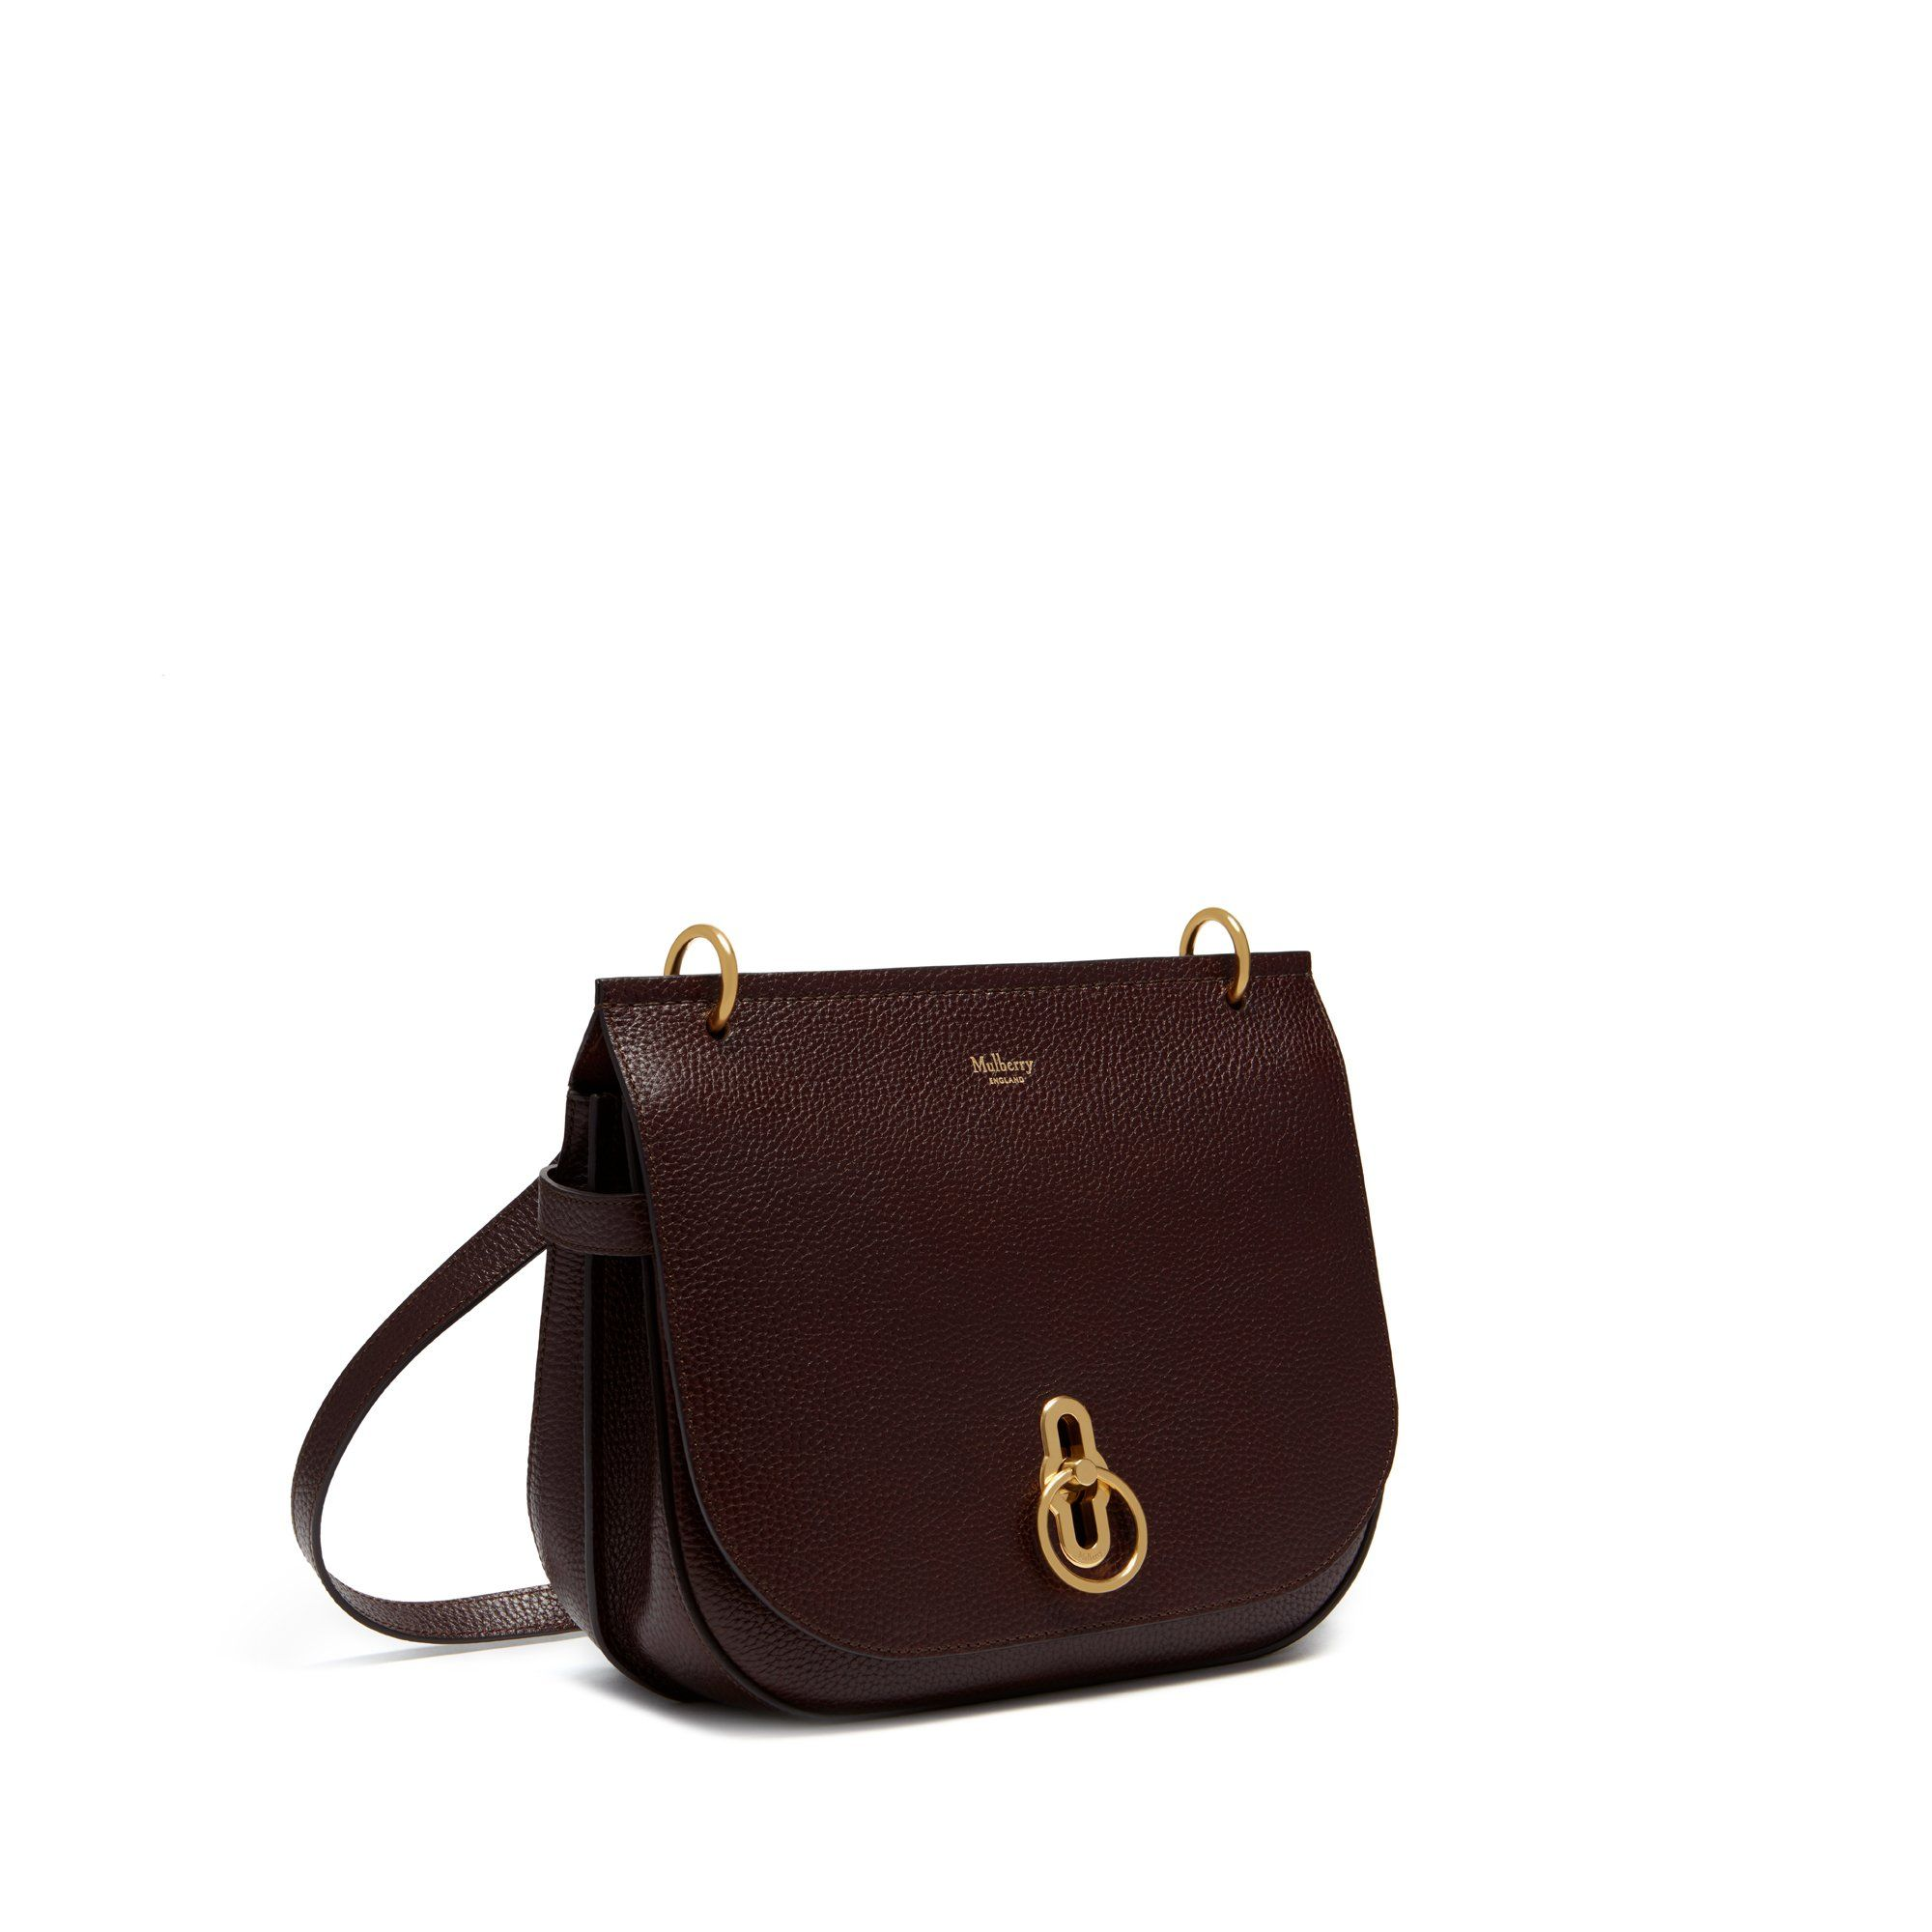 Shoulder Bags   Women s Bags   Women   Mulberry f596356834